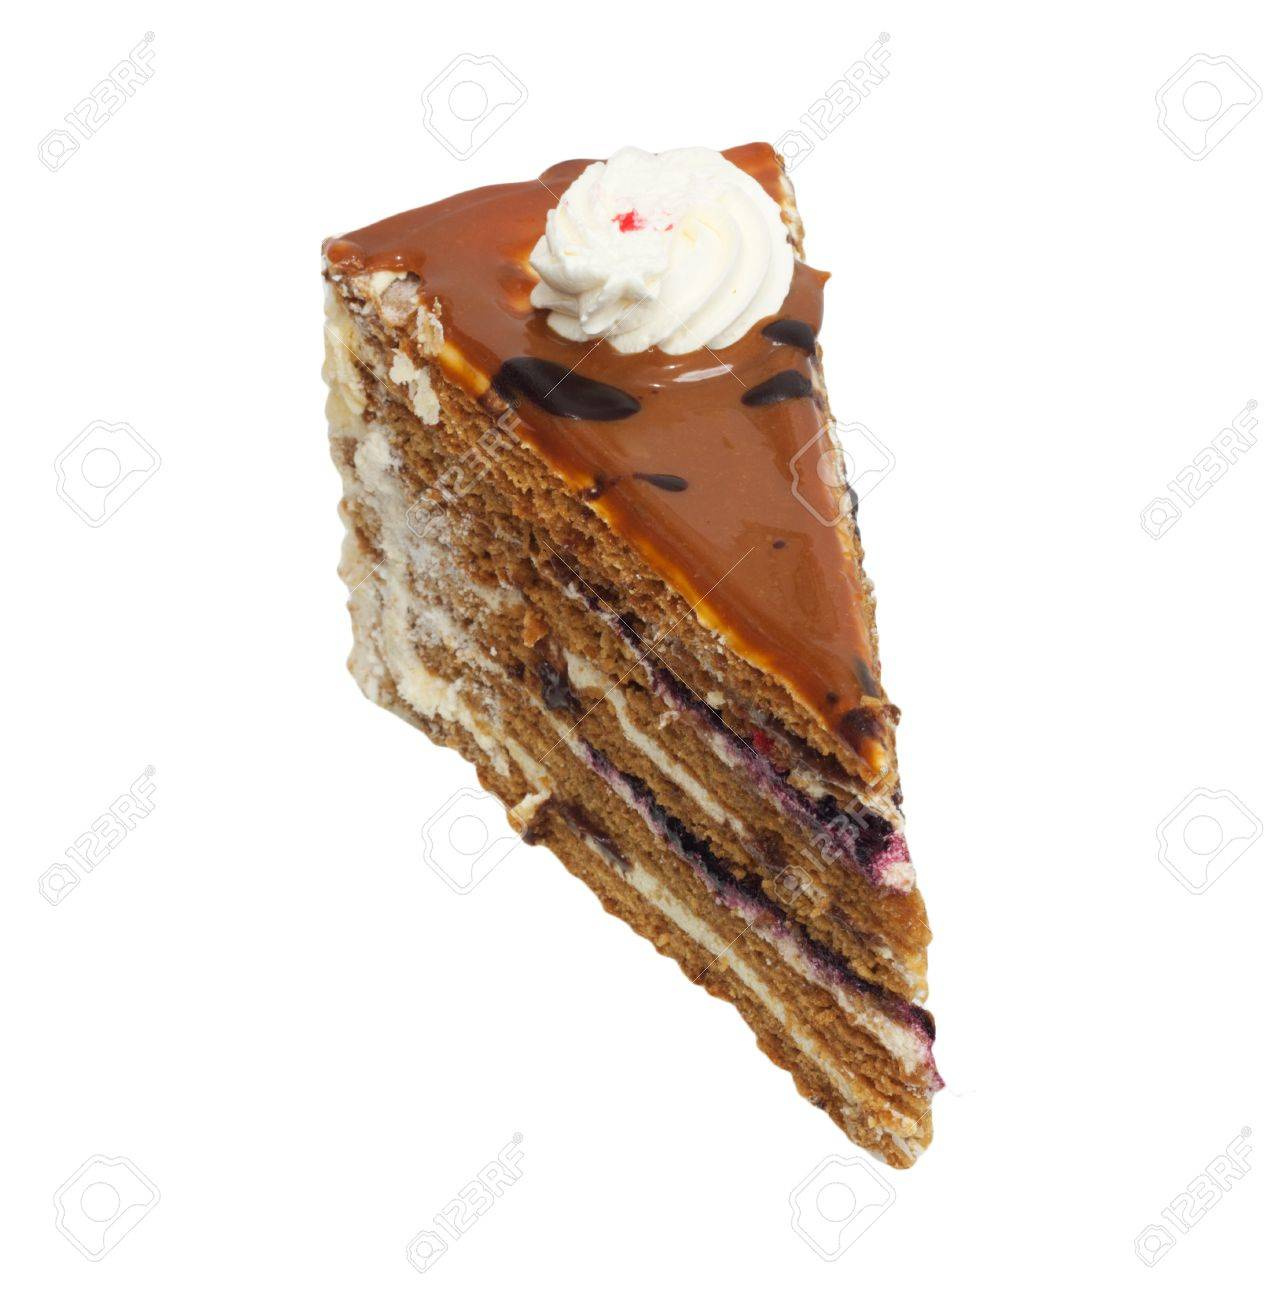 Slice of cream cake with chocolate on the white background Stock Photo - 9333155